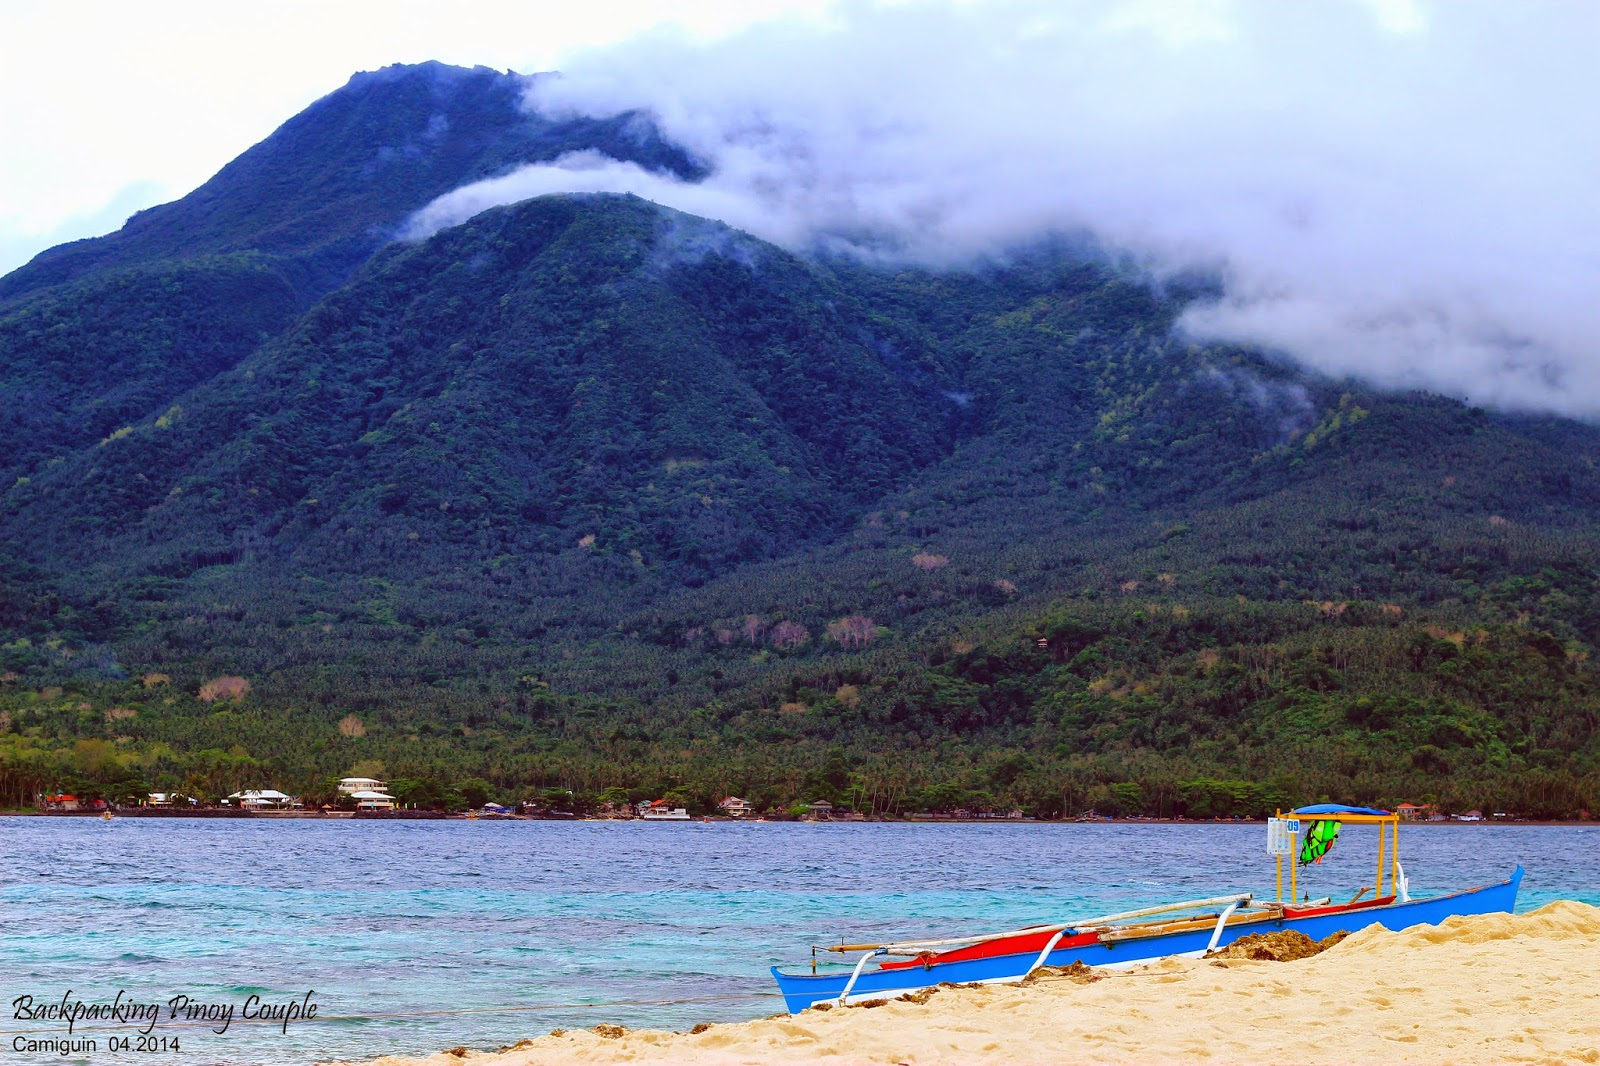 Backpacking Pinoy Couple, Backpacking Philippines, Northern Mindanao, Philippine travel, Camiguin, How to go to Camiguin, what to do in camiguin, where to go in camiguin, Camiguin roadtrip, road trip, Camiguin Itinerary